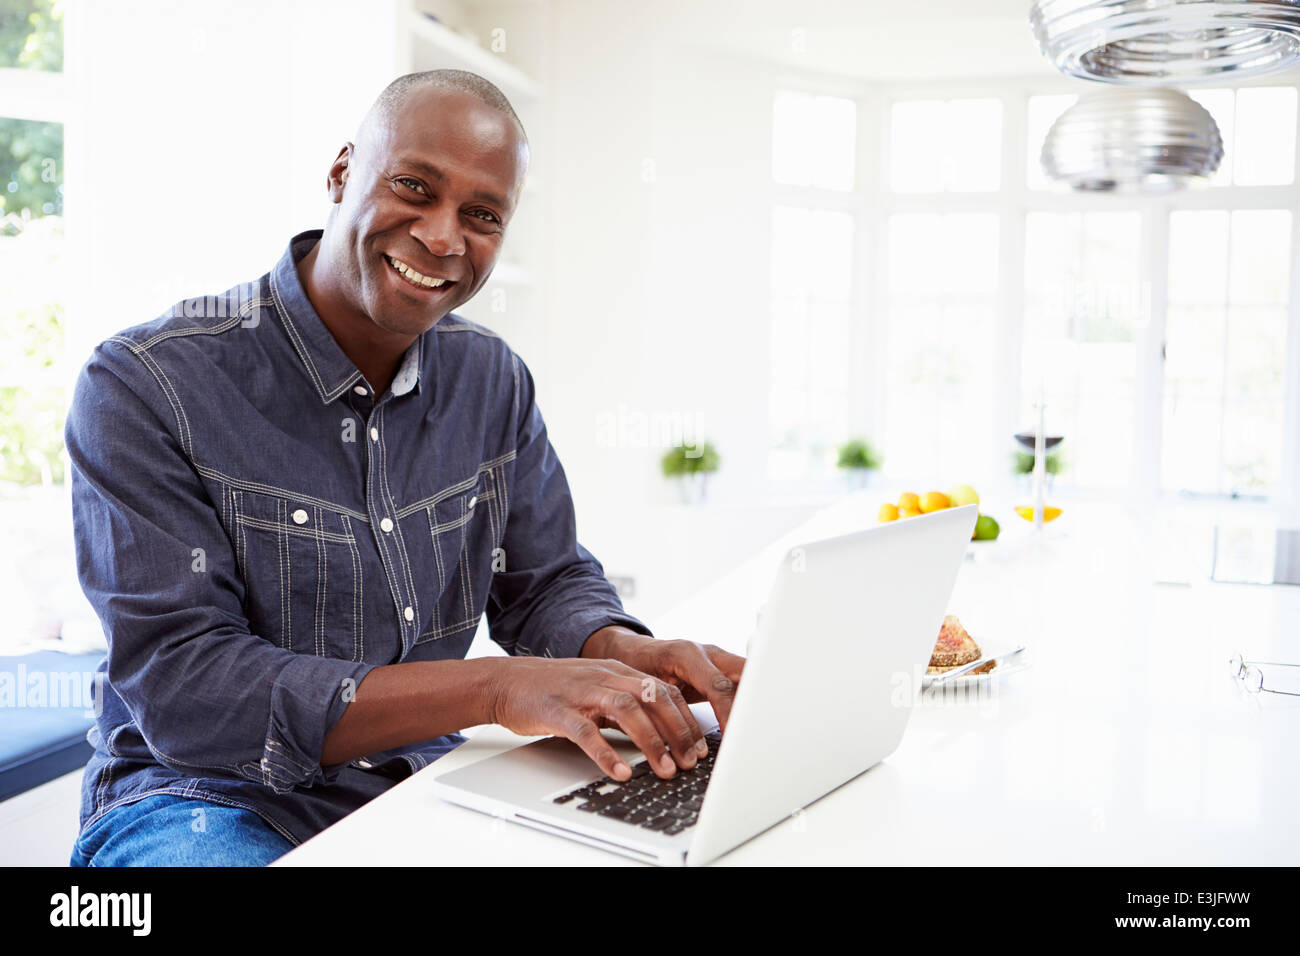 African American Man Using Laptop At Home - Stock Image